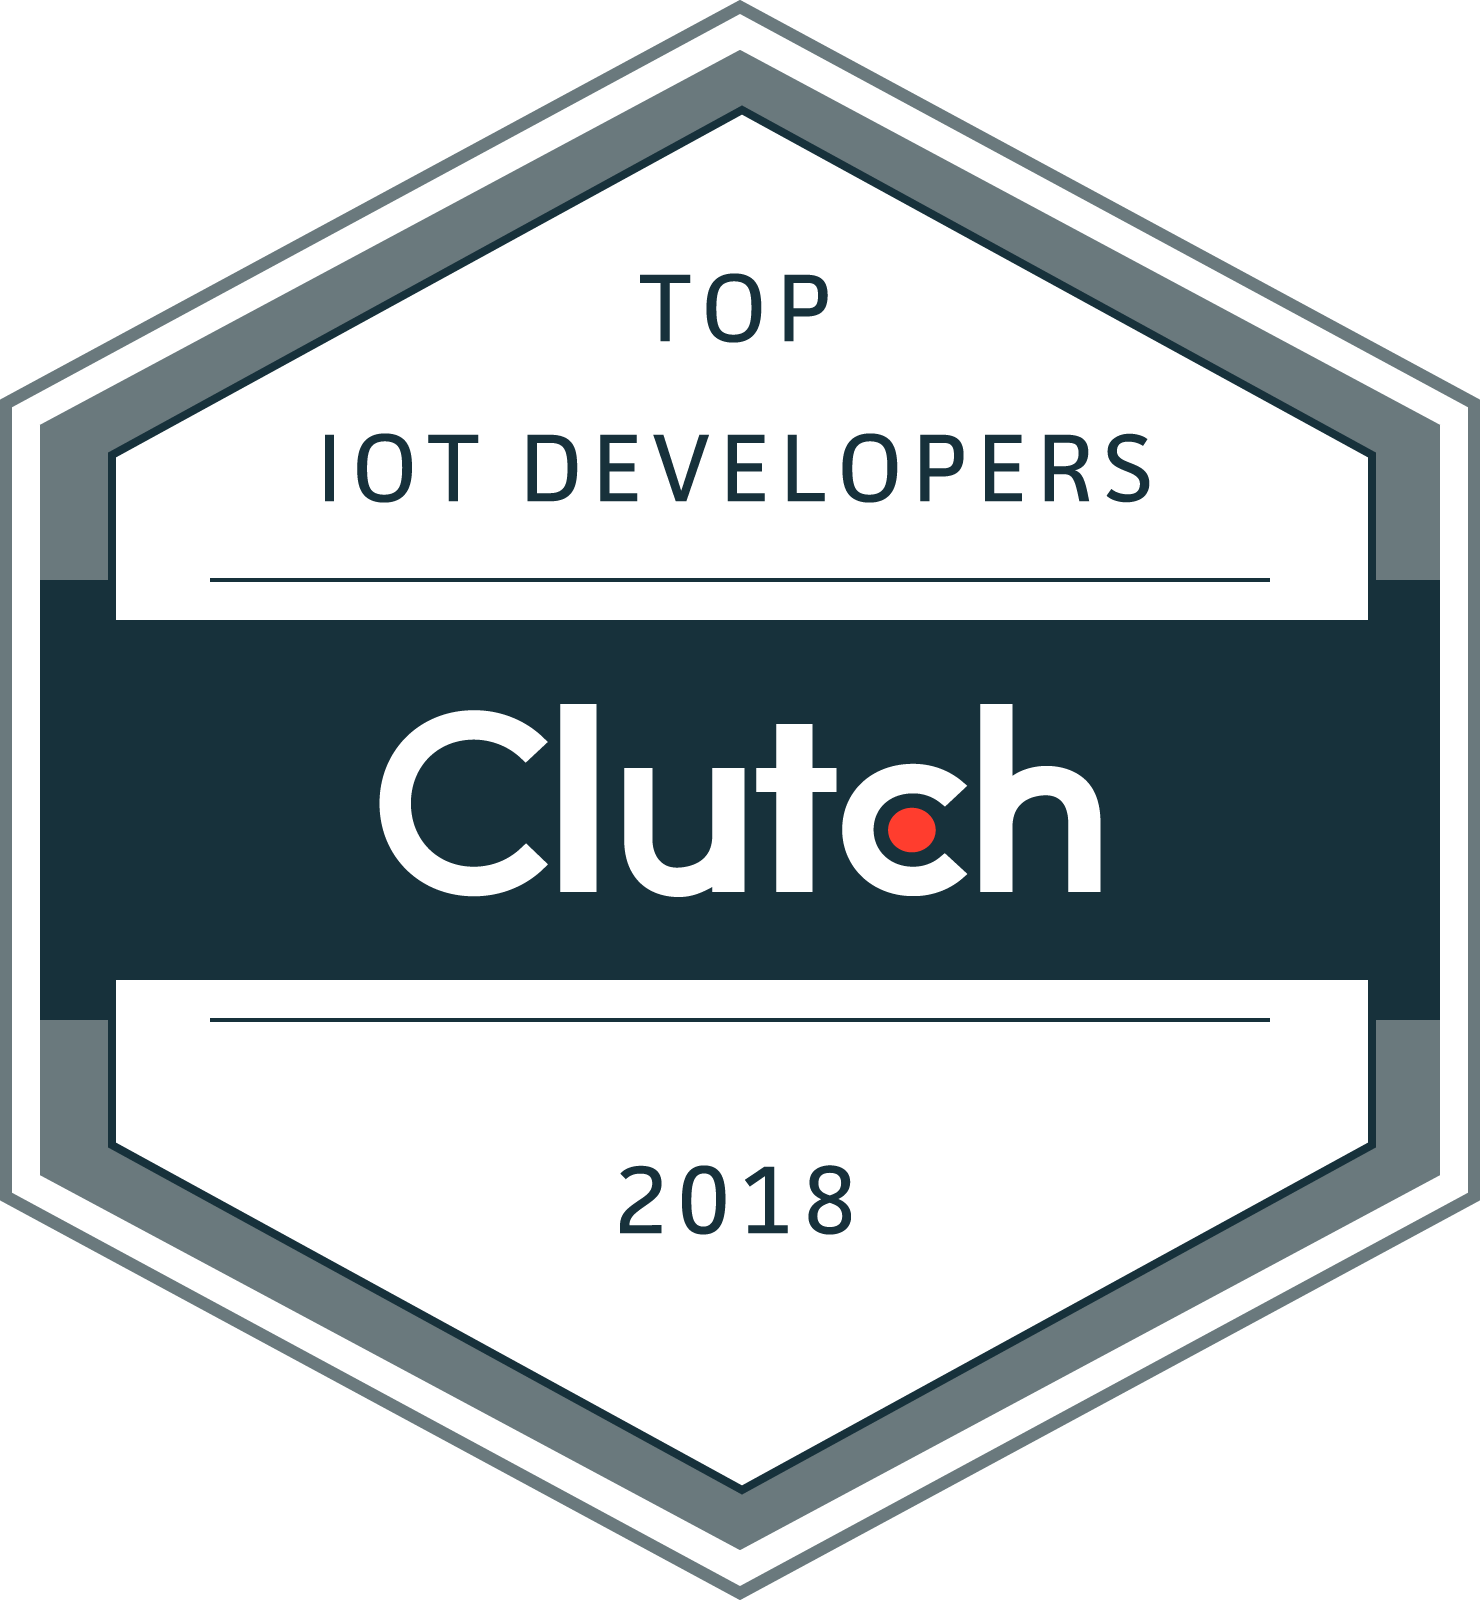 Top IoT Developers 2018